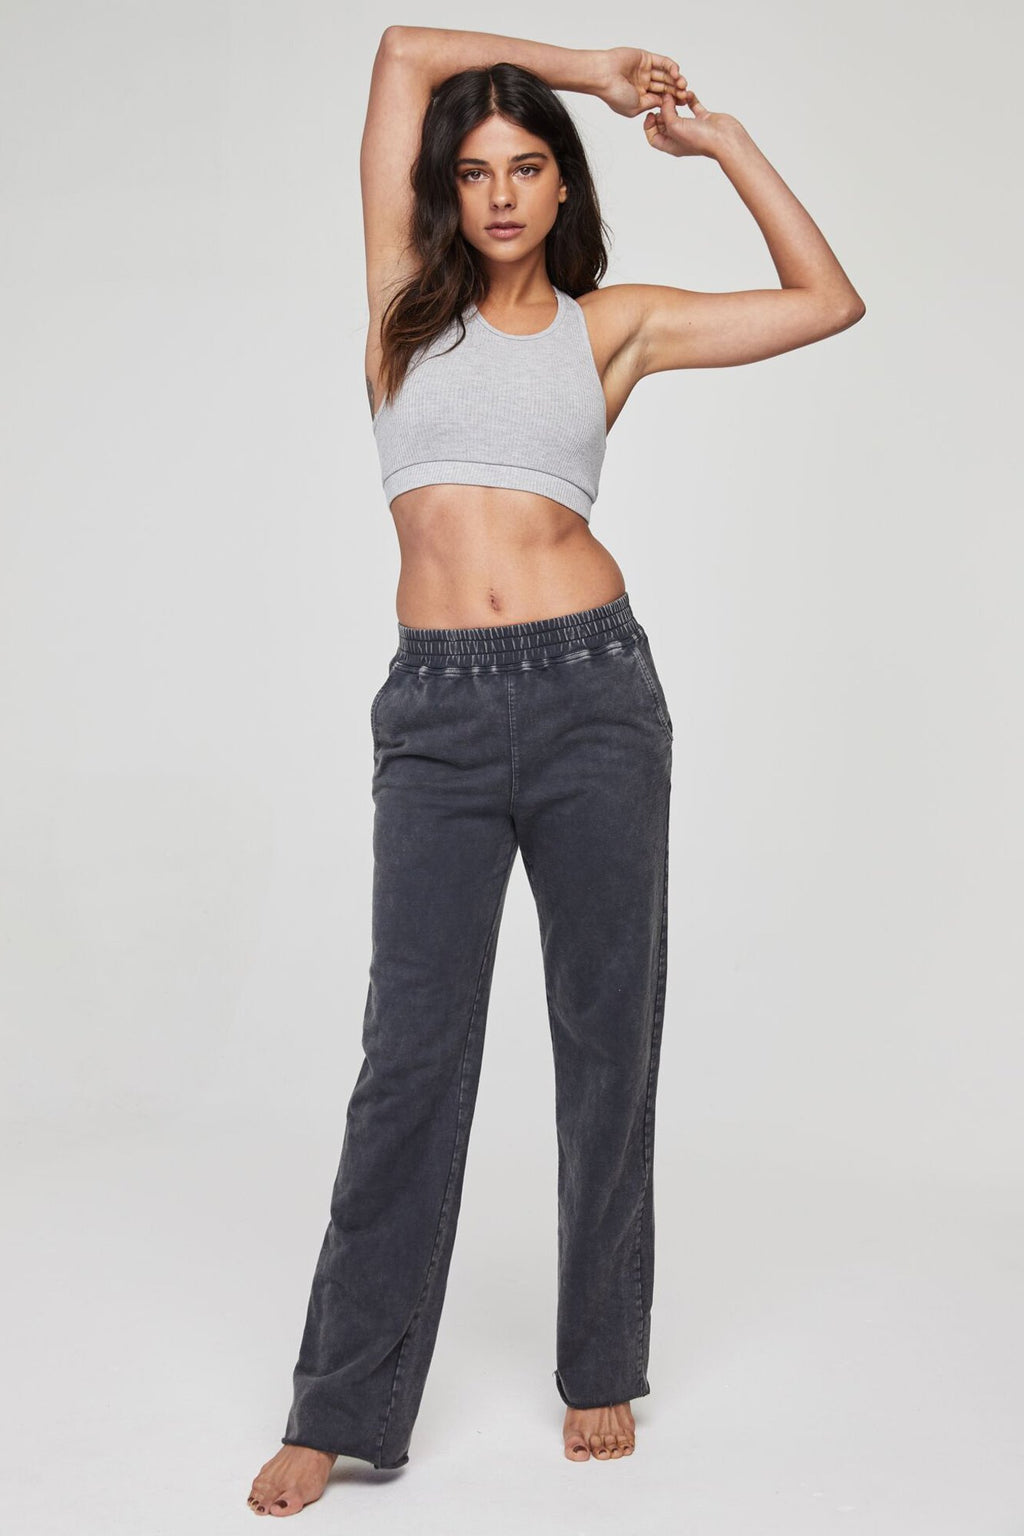 Model is wearing dark grey, high-waist, wide leg spiritual gangster sweat pants. The high waist sweatpant comes with raw edge hem and elastic tie waist.